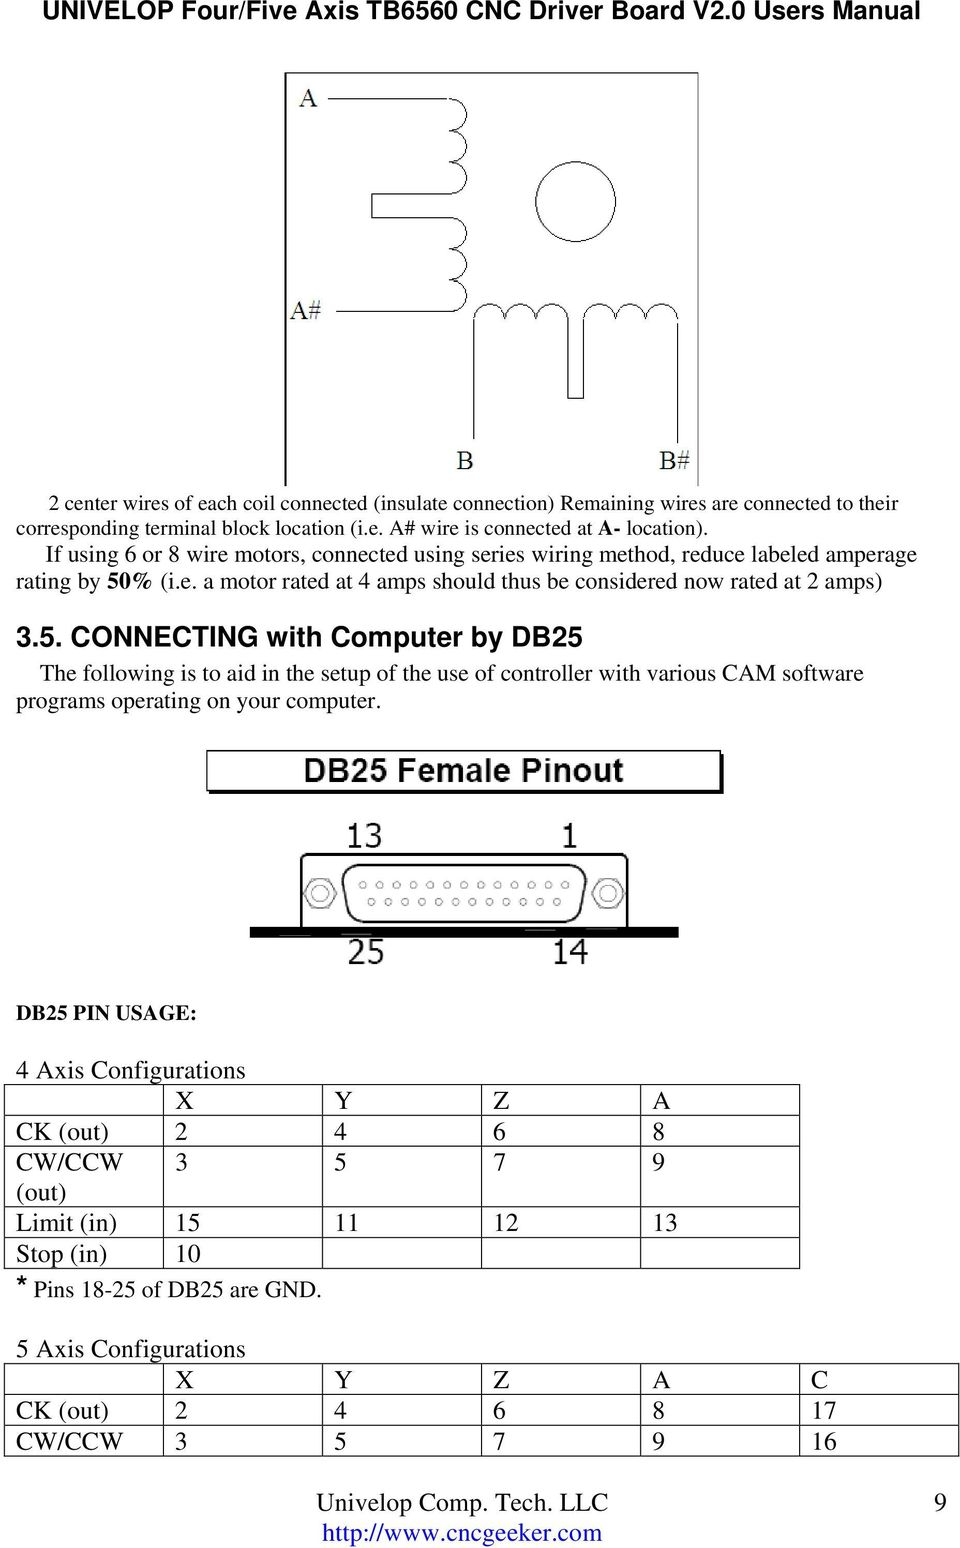 Best 12 Gauge Amp Rating Ideas - Electrical Circuit Diagram Ideas ...